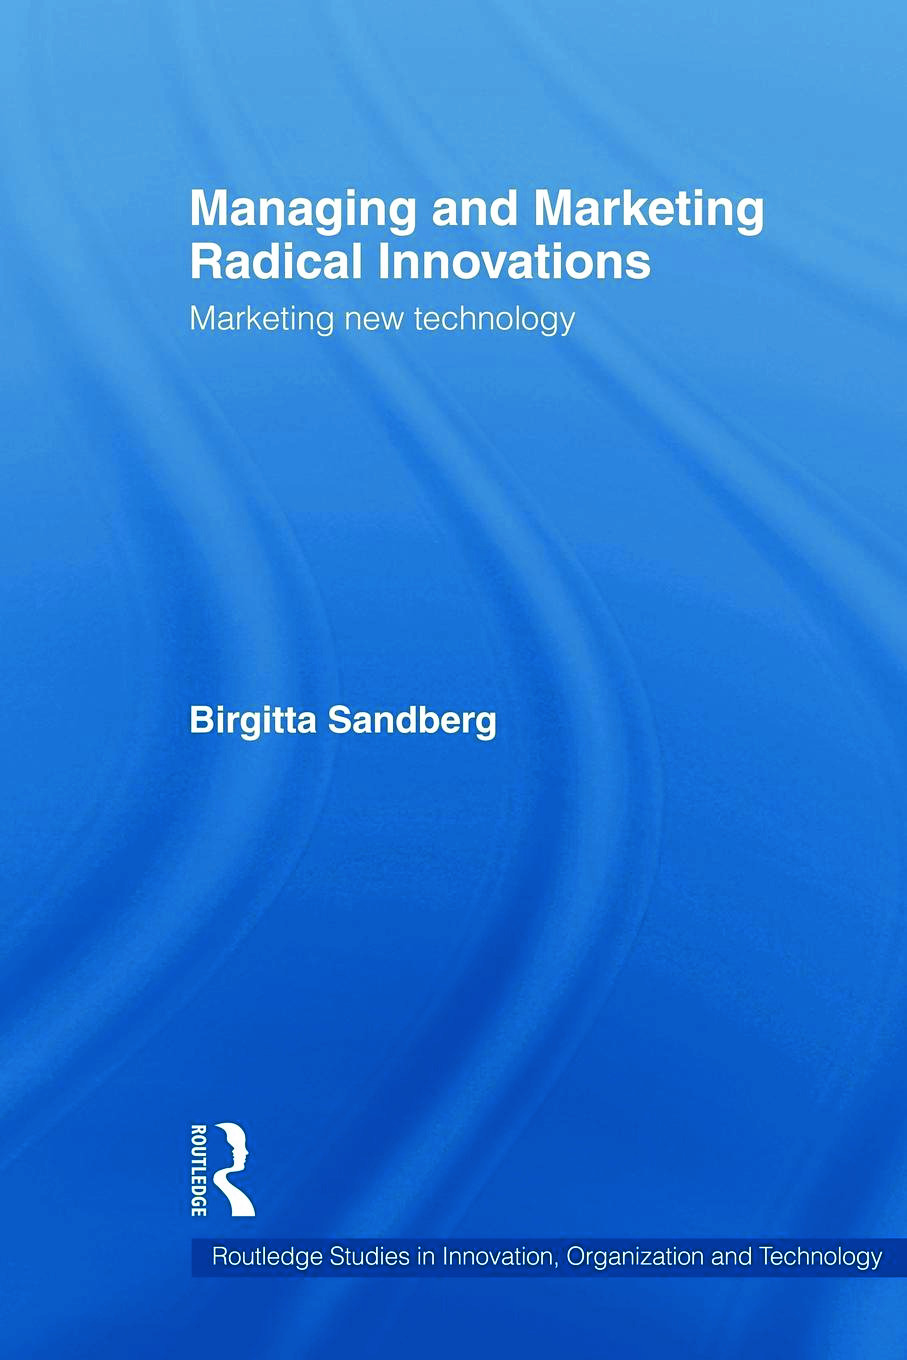 Managing and Marketing Radical Innovations